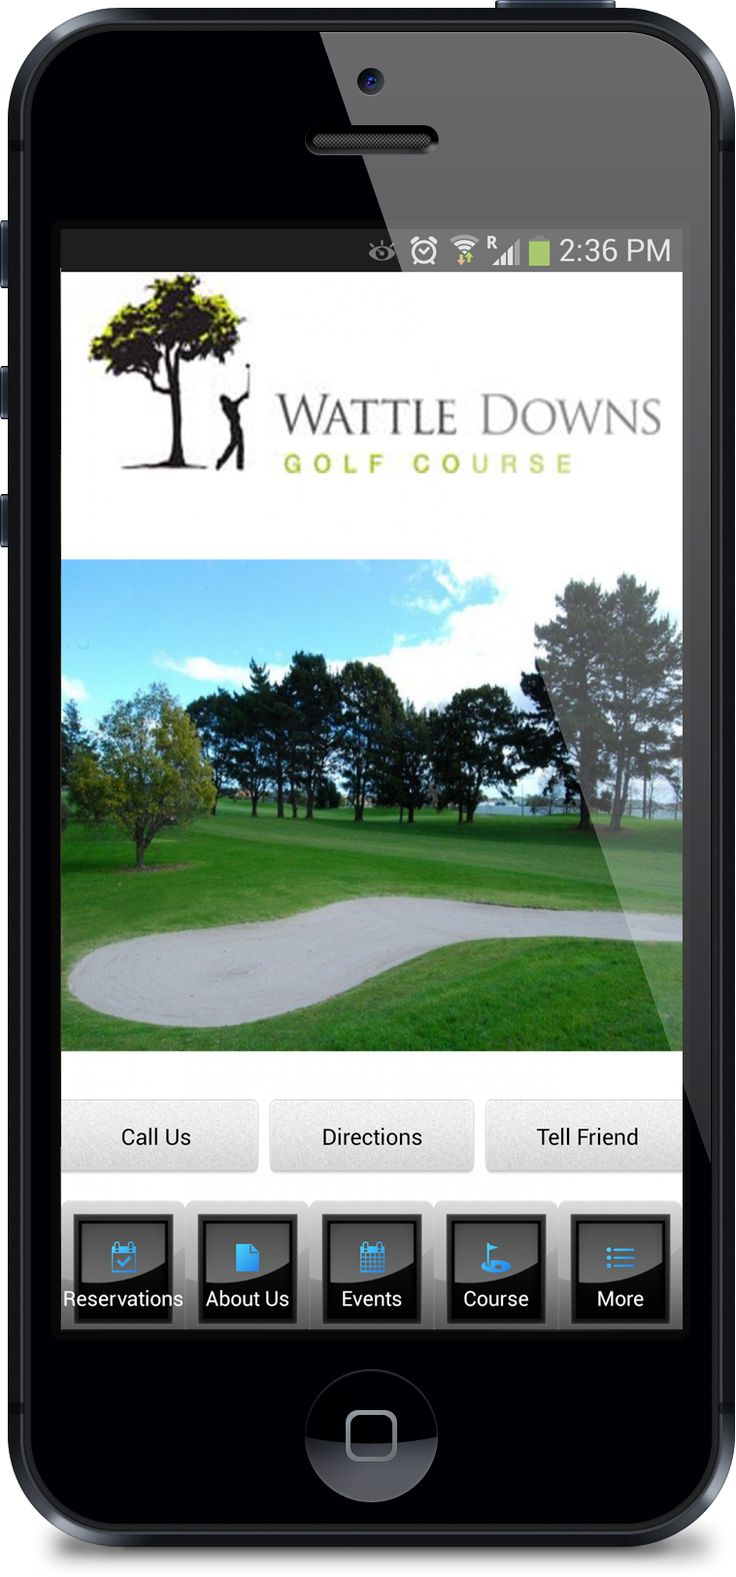 Golf Club Mobile Apps - Connect with players and spread messages and info with ease. http://www.mobileappfx.co.nz